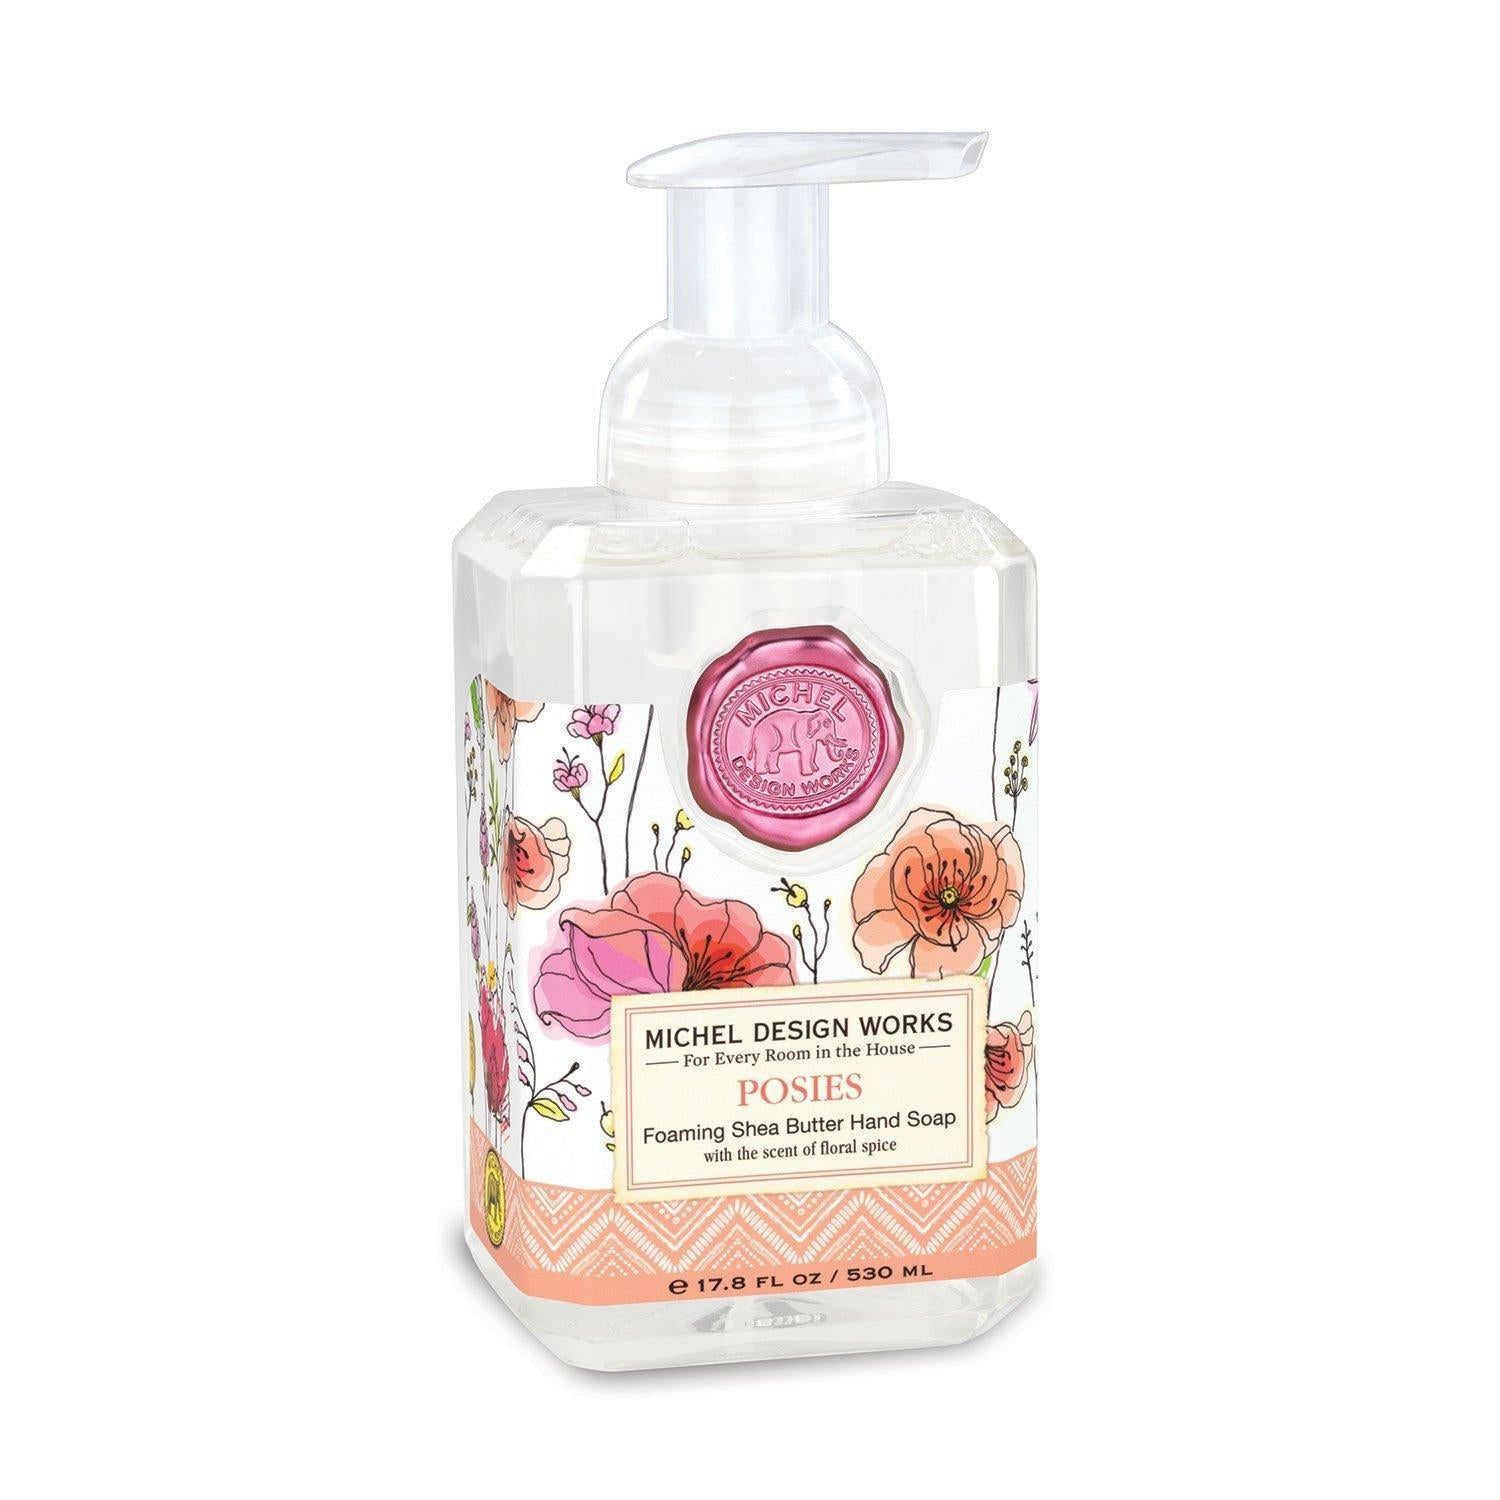 Michel Foaming Hand Soap, Posies